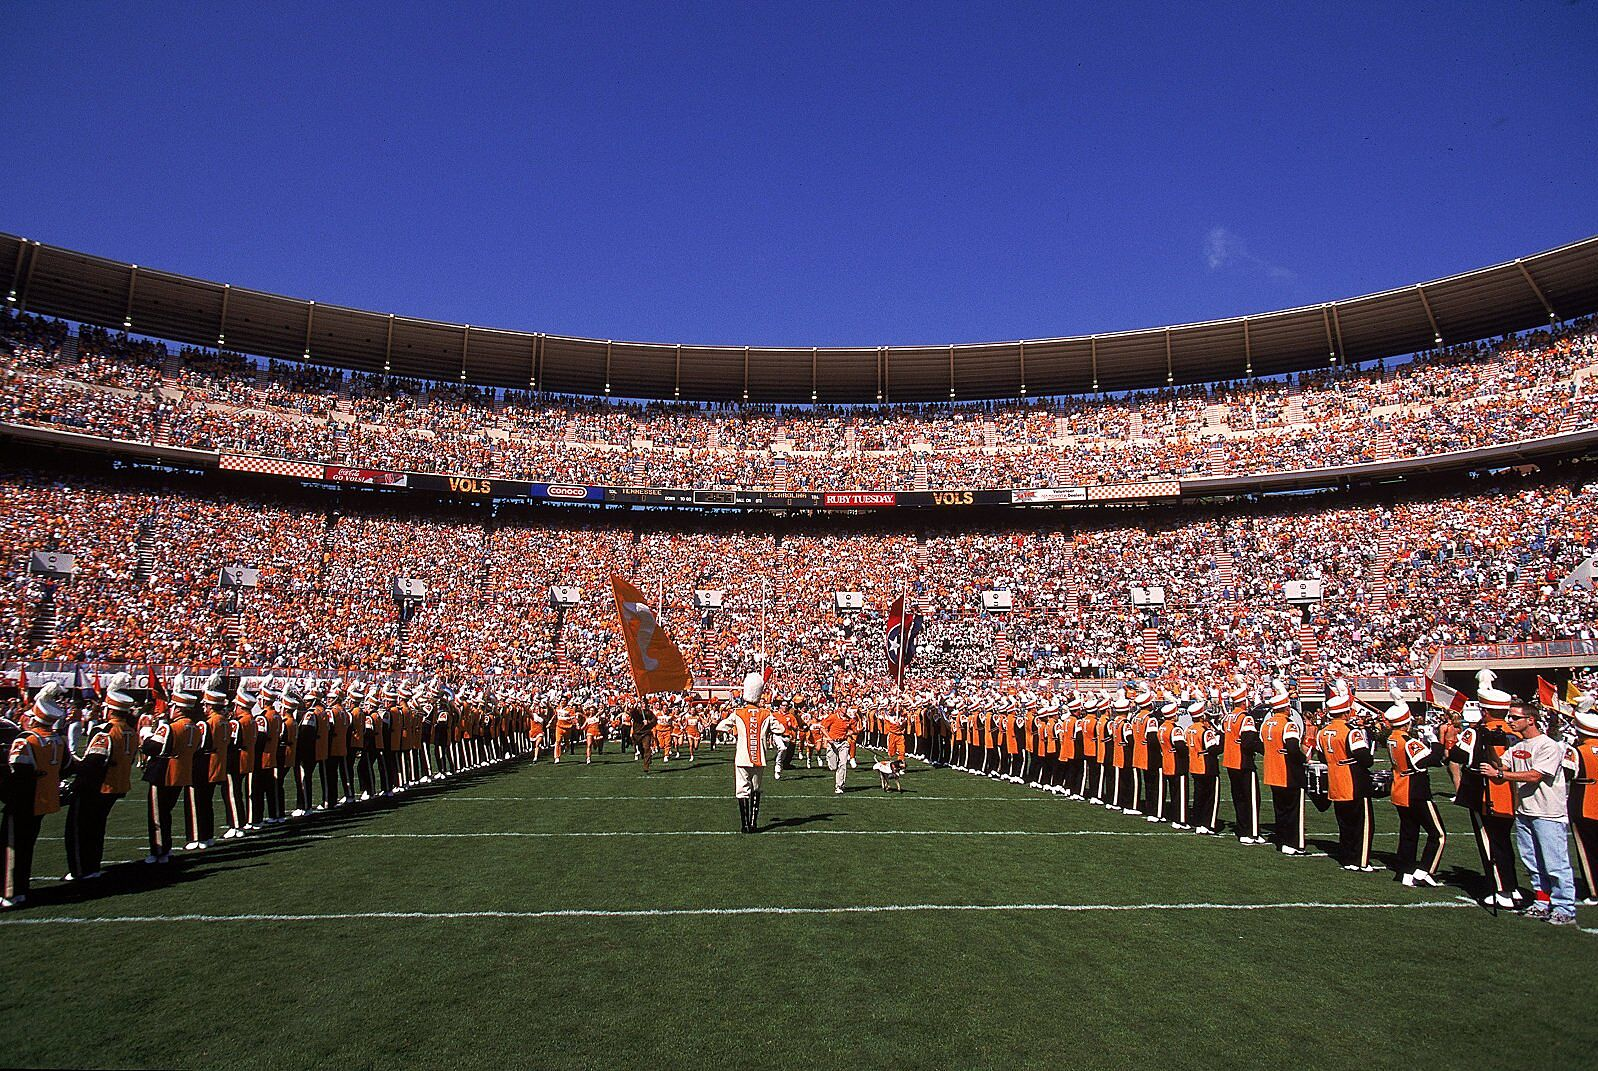 Tennessee football: 10 memorable game-winning touchdown drives in Vols history